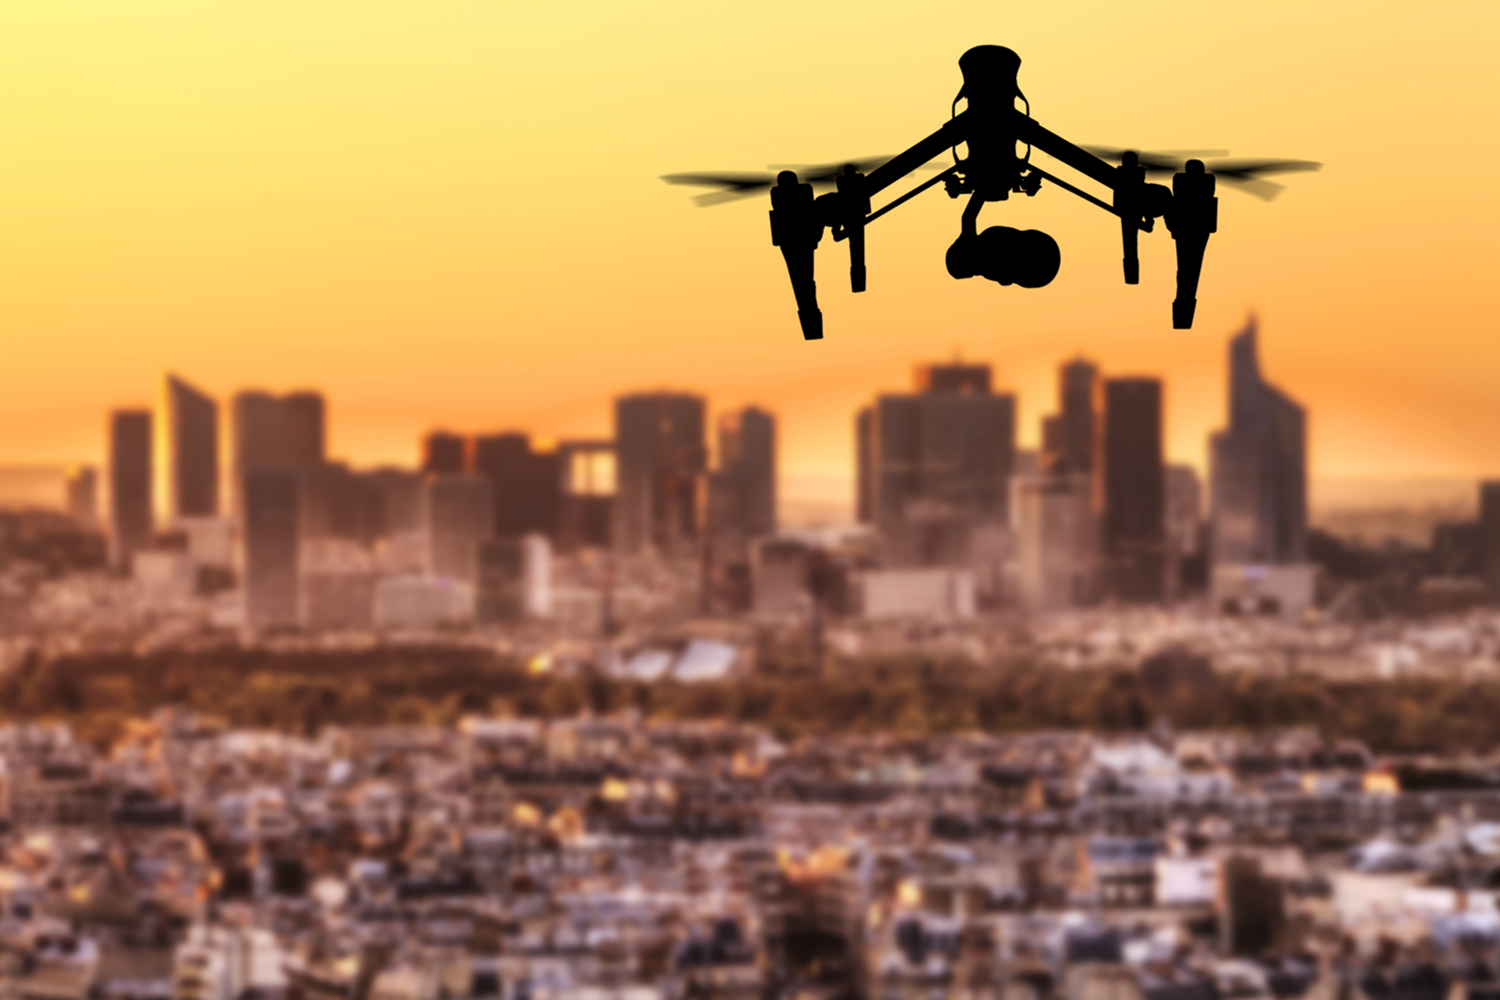 Aerial Photography Company Settles With FAA Over Illegally Flying Drones